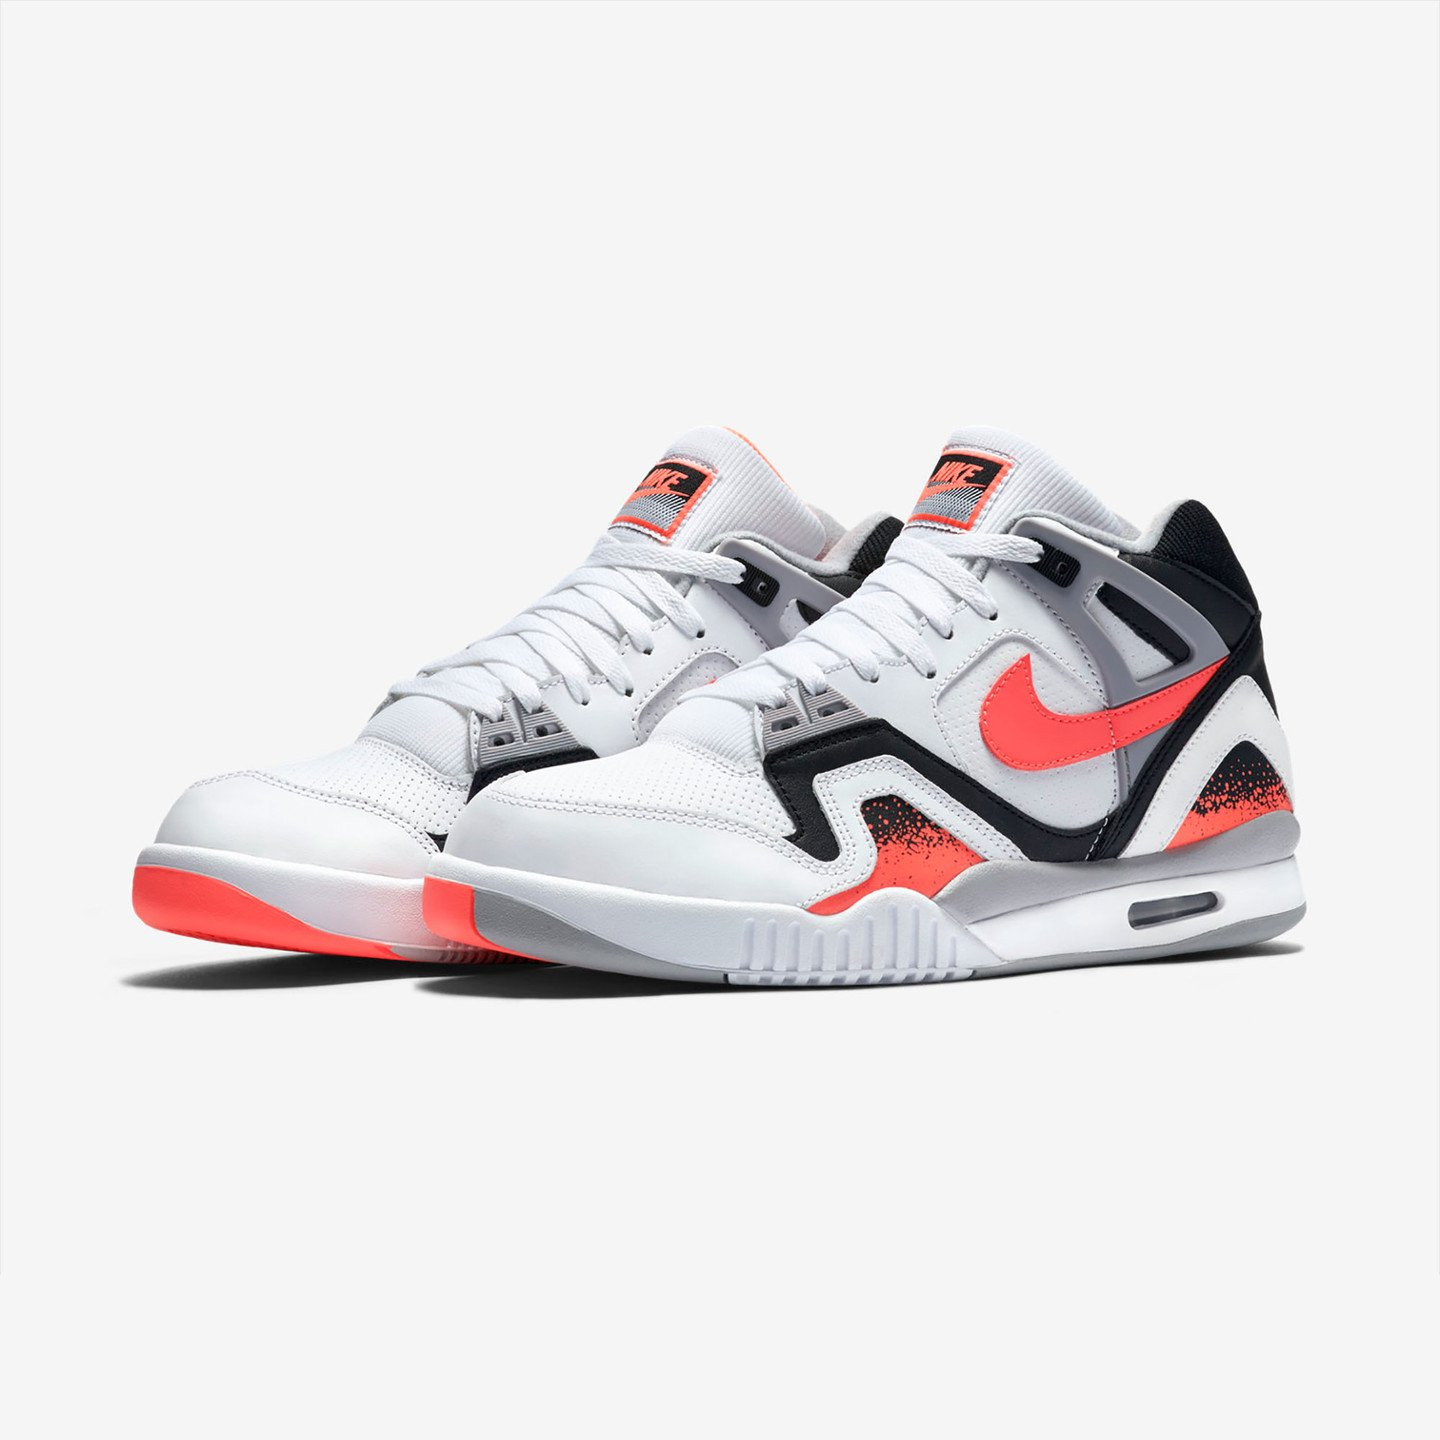 Nike Air Tech Challenge II White / Hot Lava 318408-104-47.5